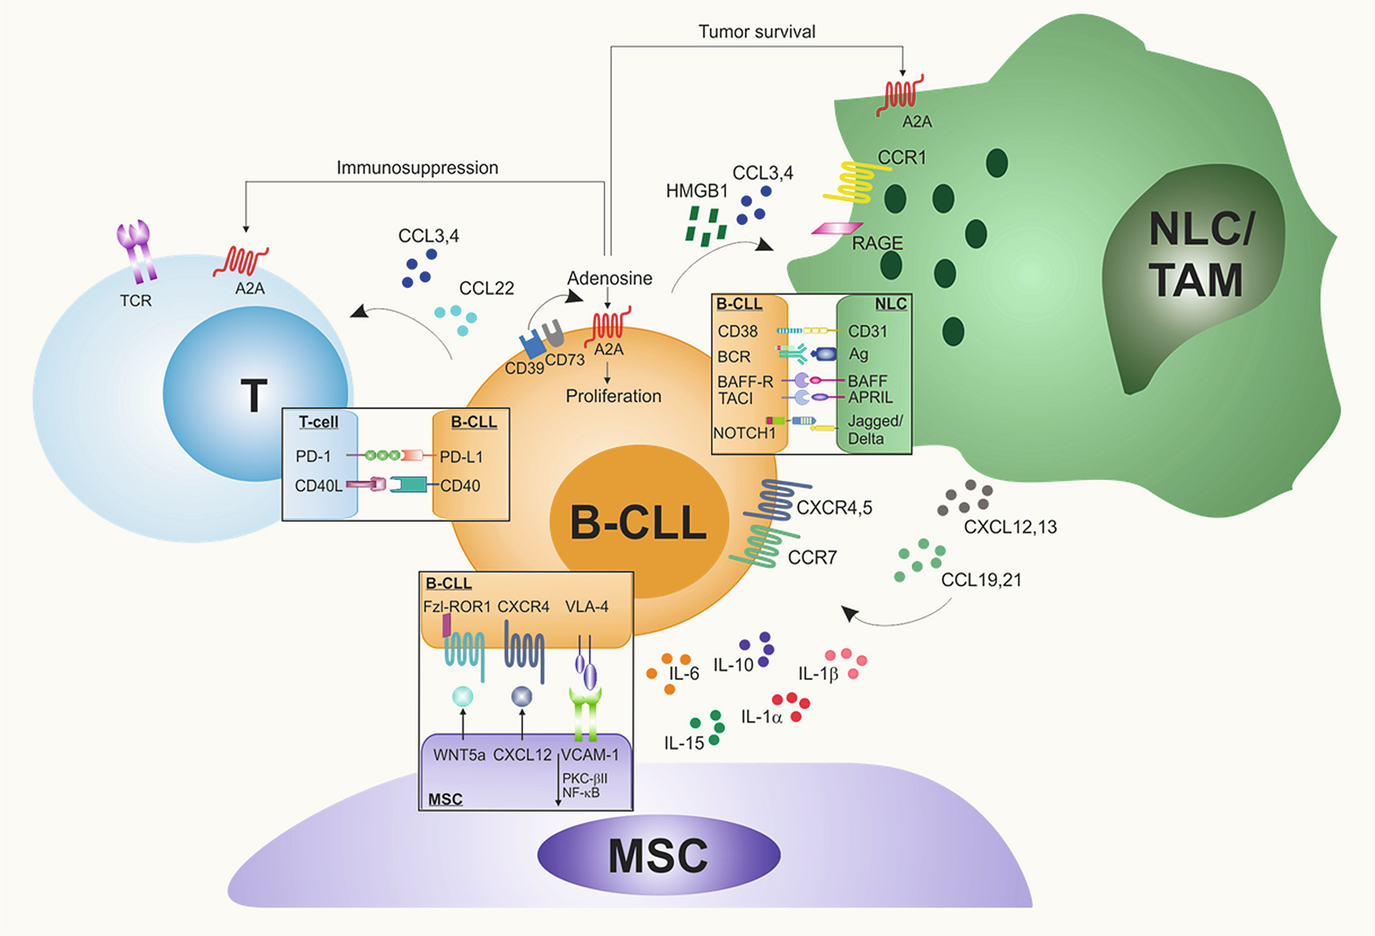 Mechanisms of Resistance to Targeted Therapies in Chronic